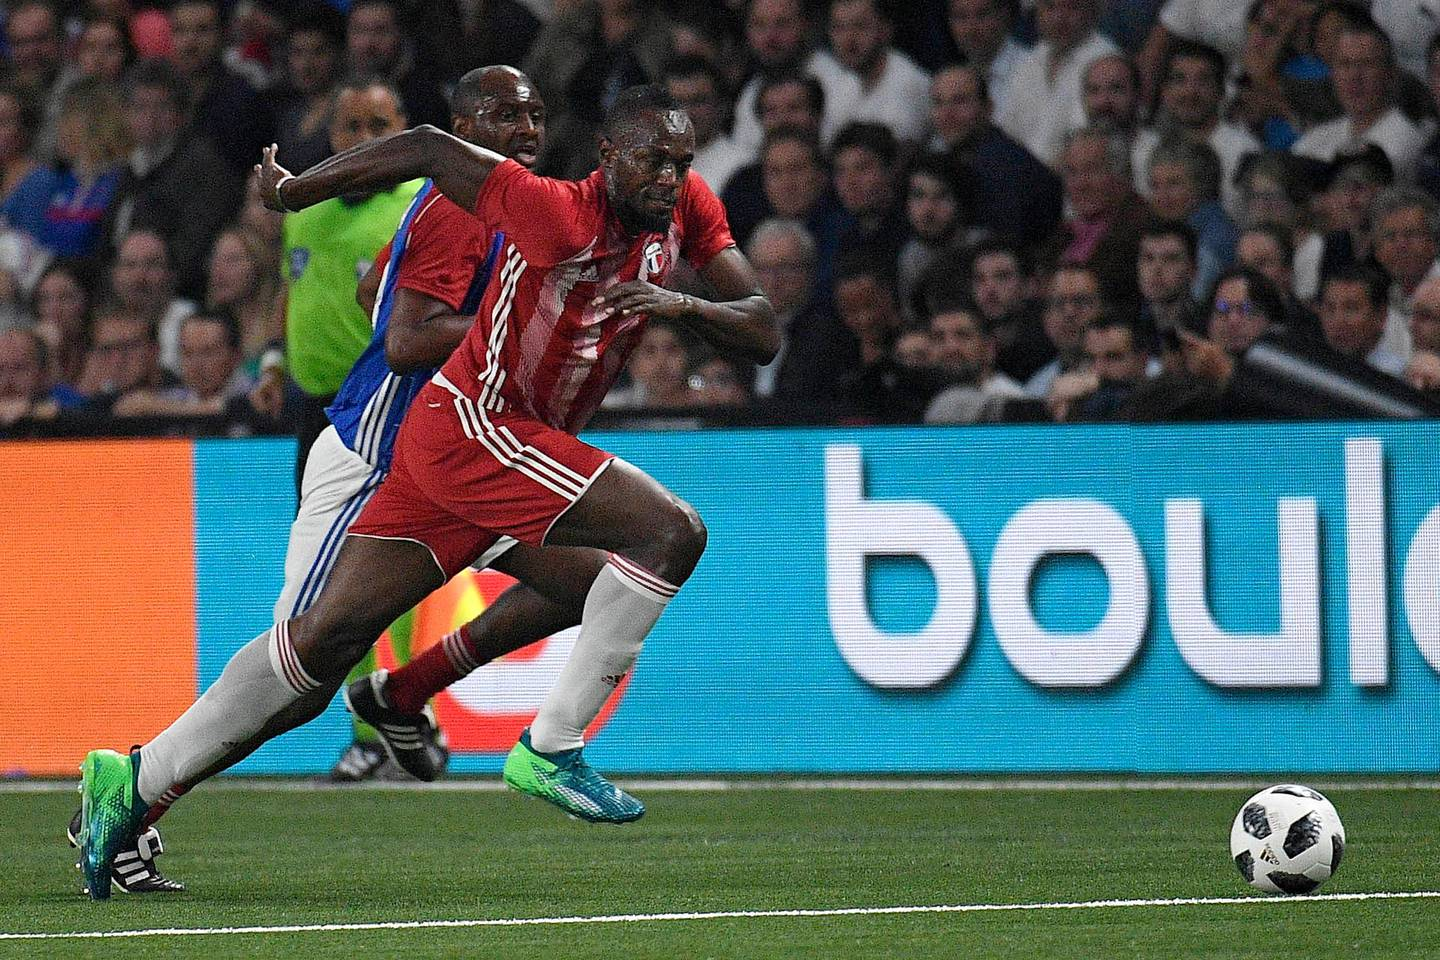 epa06894360 (FILE) - Jamaican athlete Usain Bolt (C) in action during a friendly soccer match between a selection of French 1998 World Champion soccer players (France98) against an international selection (FIFA98) at the U Arena in Paris, France, 12 June 2018 (reissued 17 July 2018). According to media reports, Bolt is in talks with Australian A-League team, the Central Coast Mariners, for a 6-week trial with the club.  EPA/HERVE RANCHIN